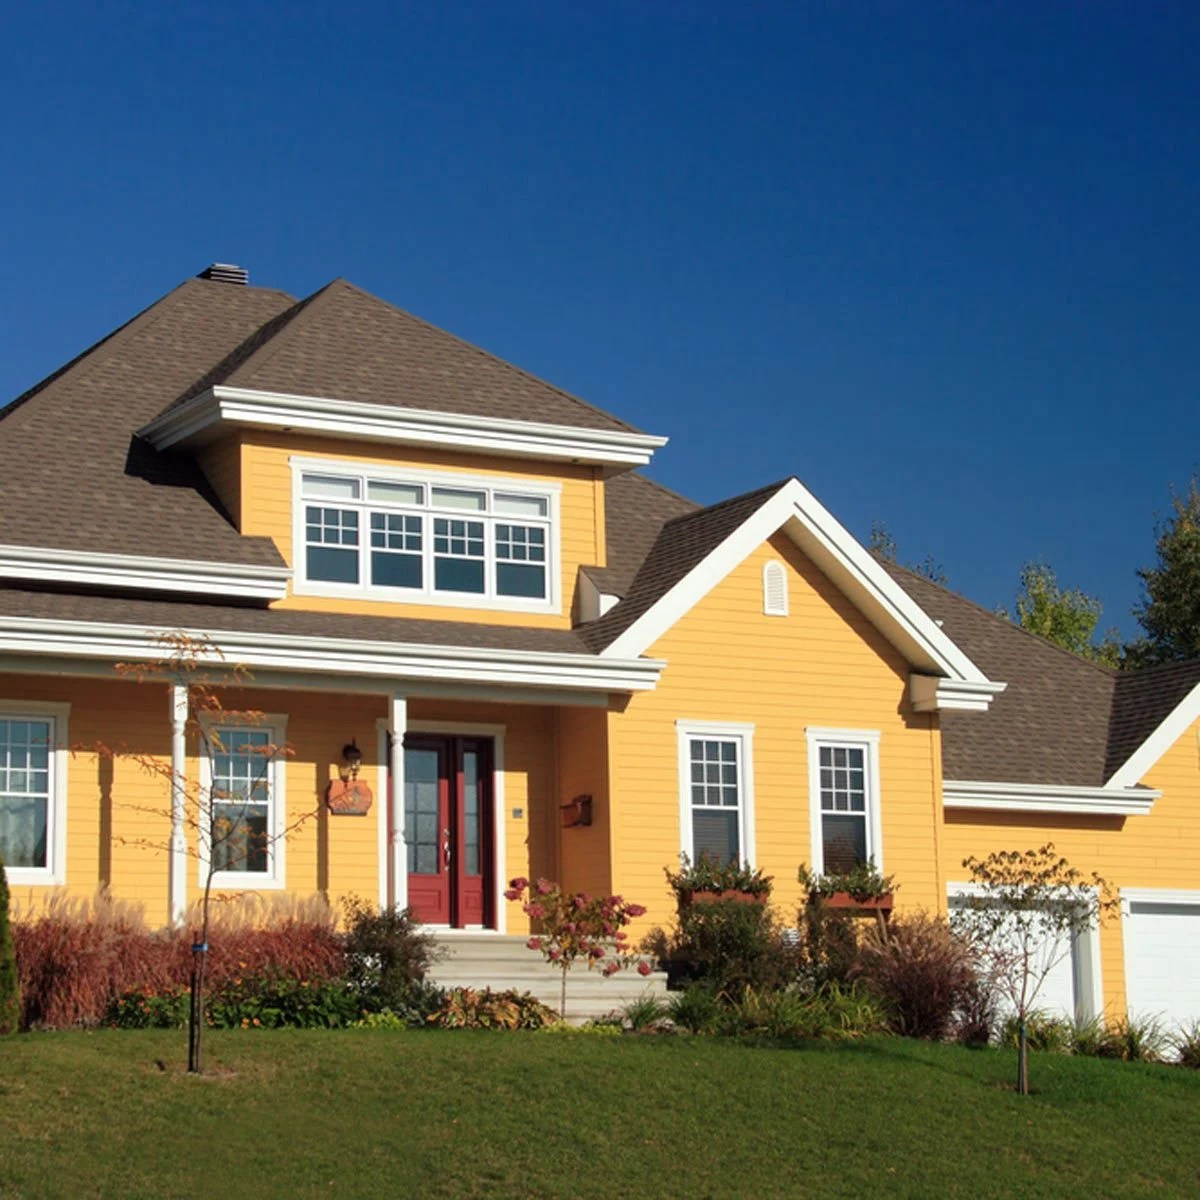 12 Trending Home Exterior Colors — The Family Handyman